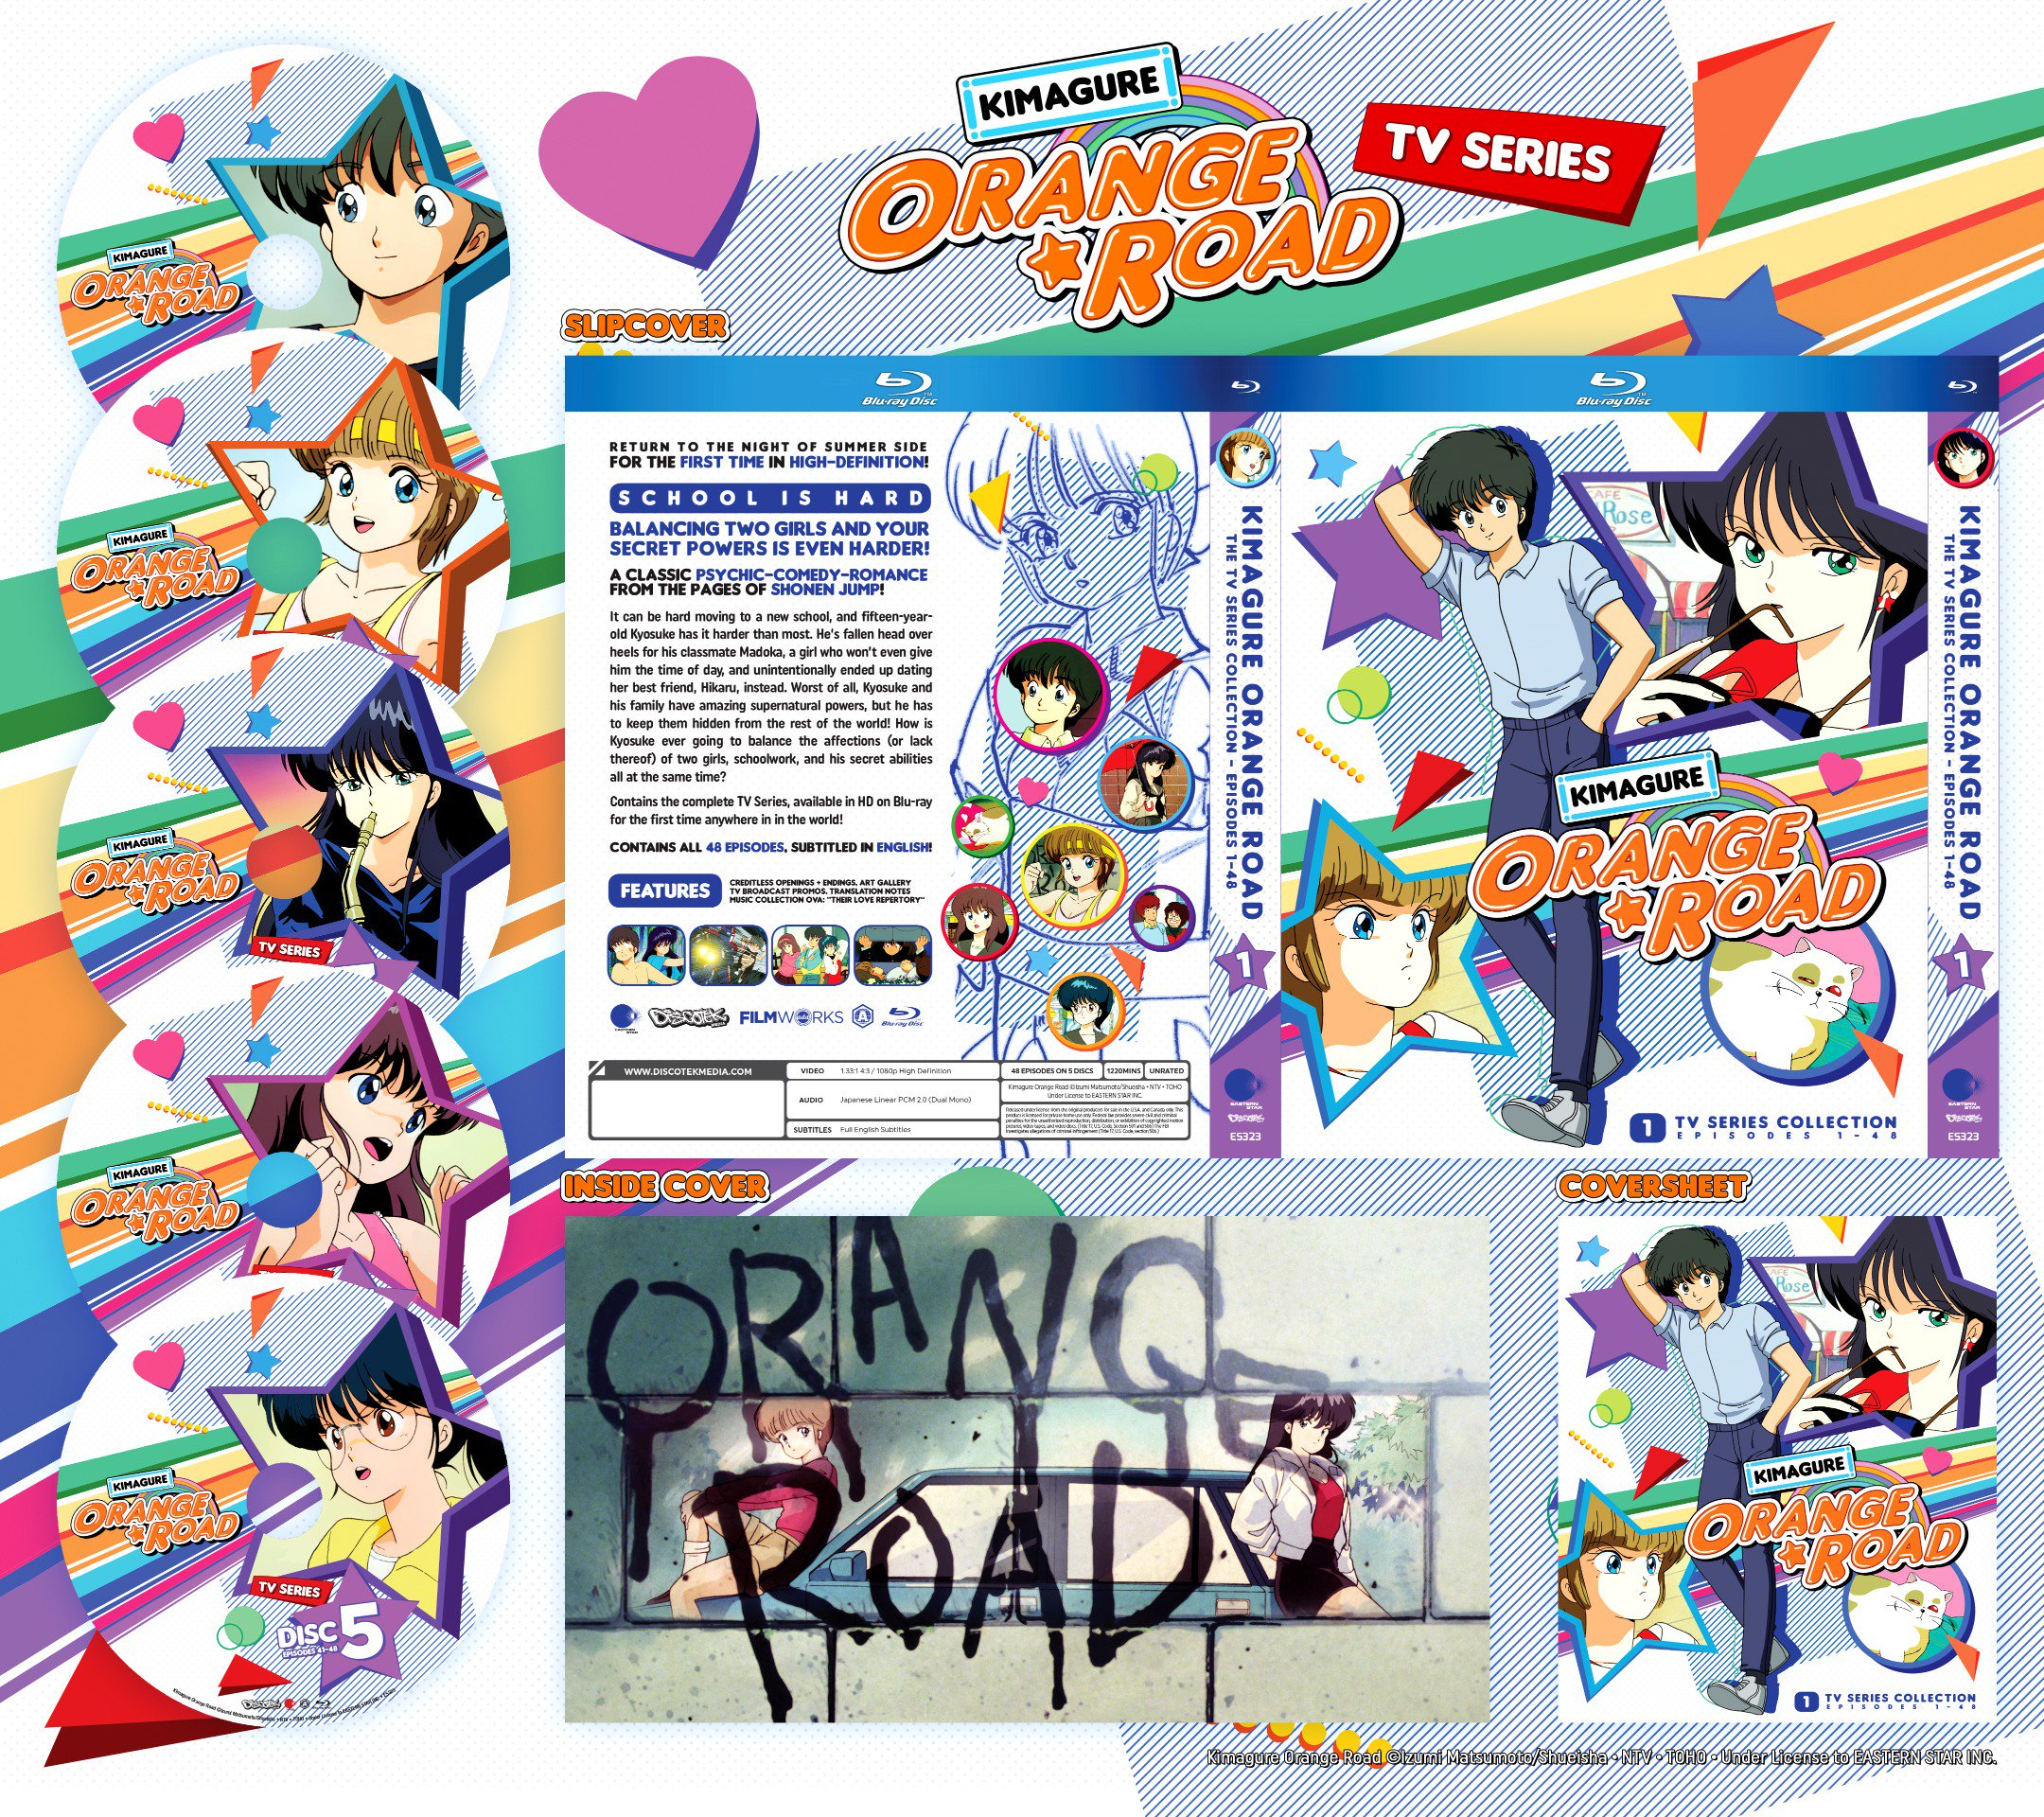 Kimagure Orange Road 25: Kimagure Orange Road: TV Series Collection